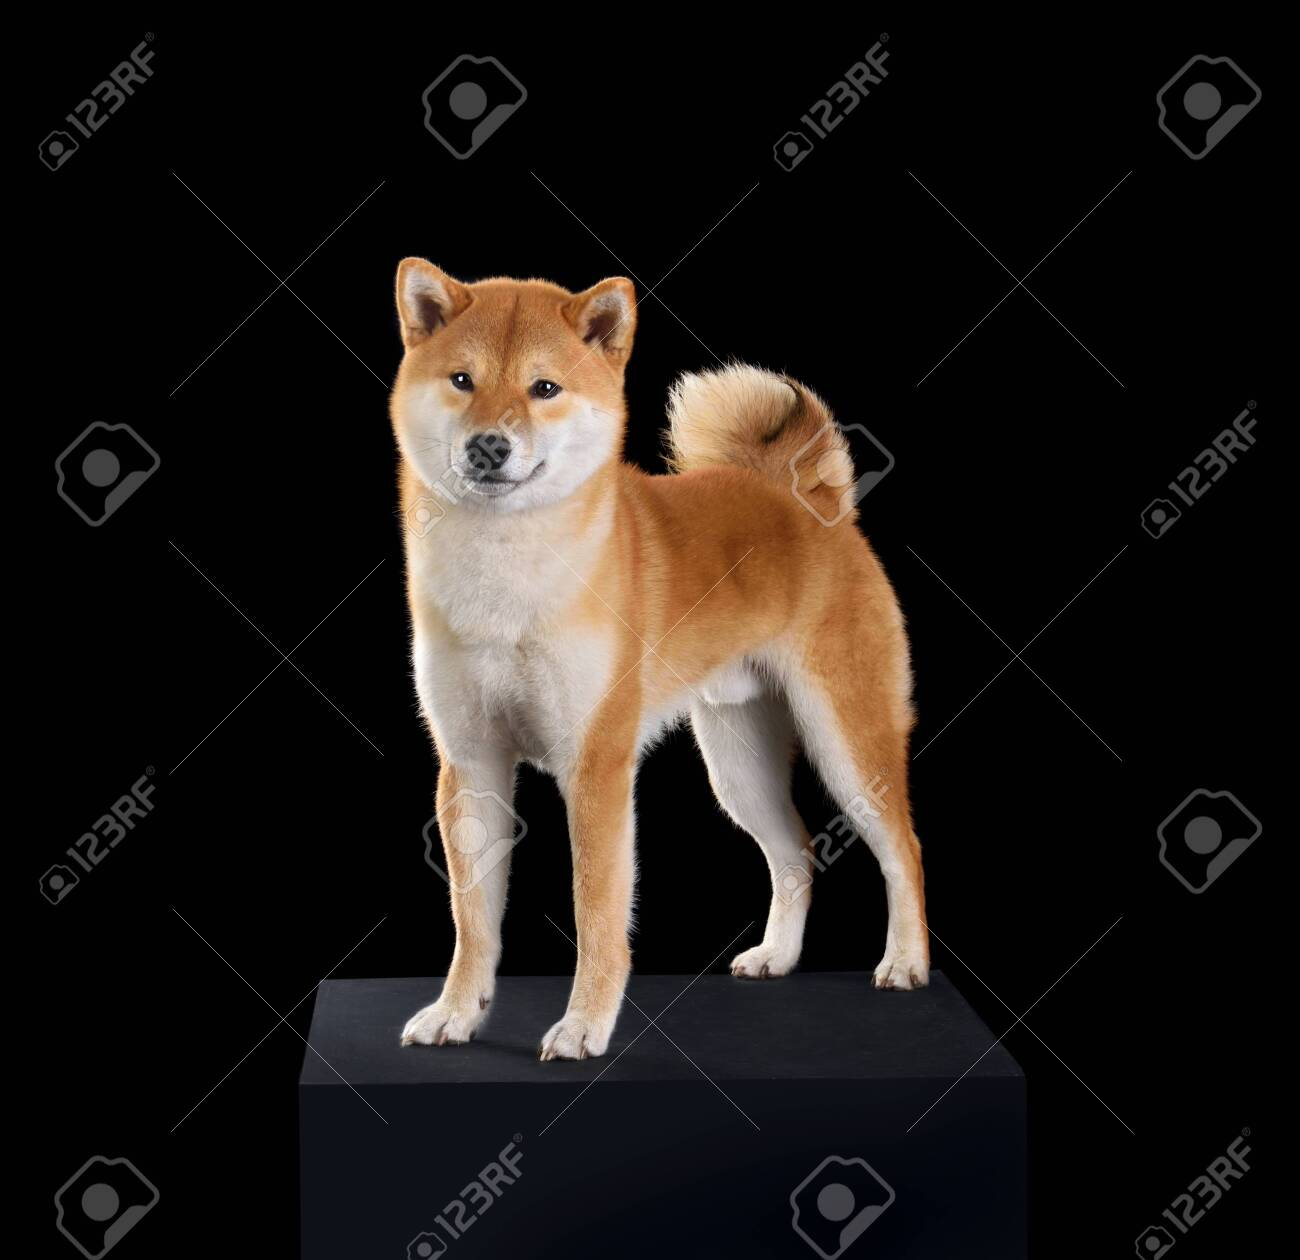 Red Shiba Inu Dog Standing On A Black Background Stock Photo Picture And Royalty Free Image Image 144855184